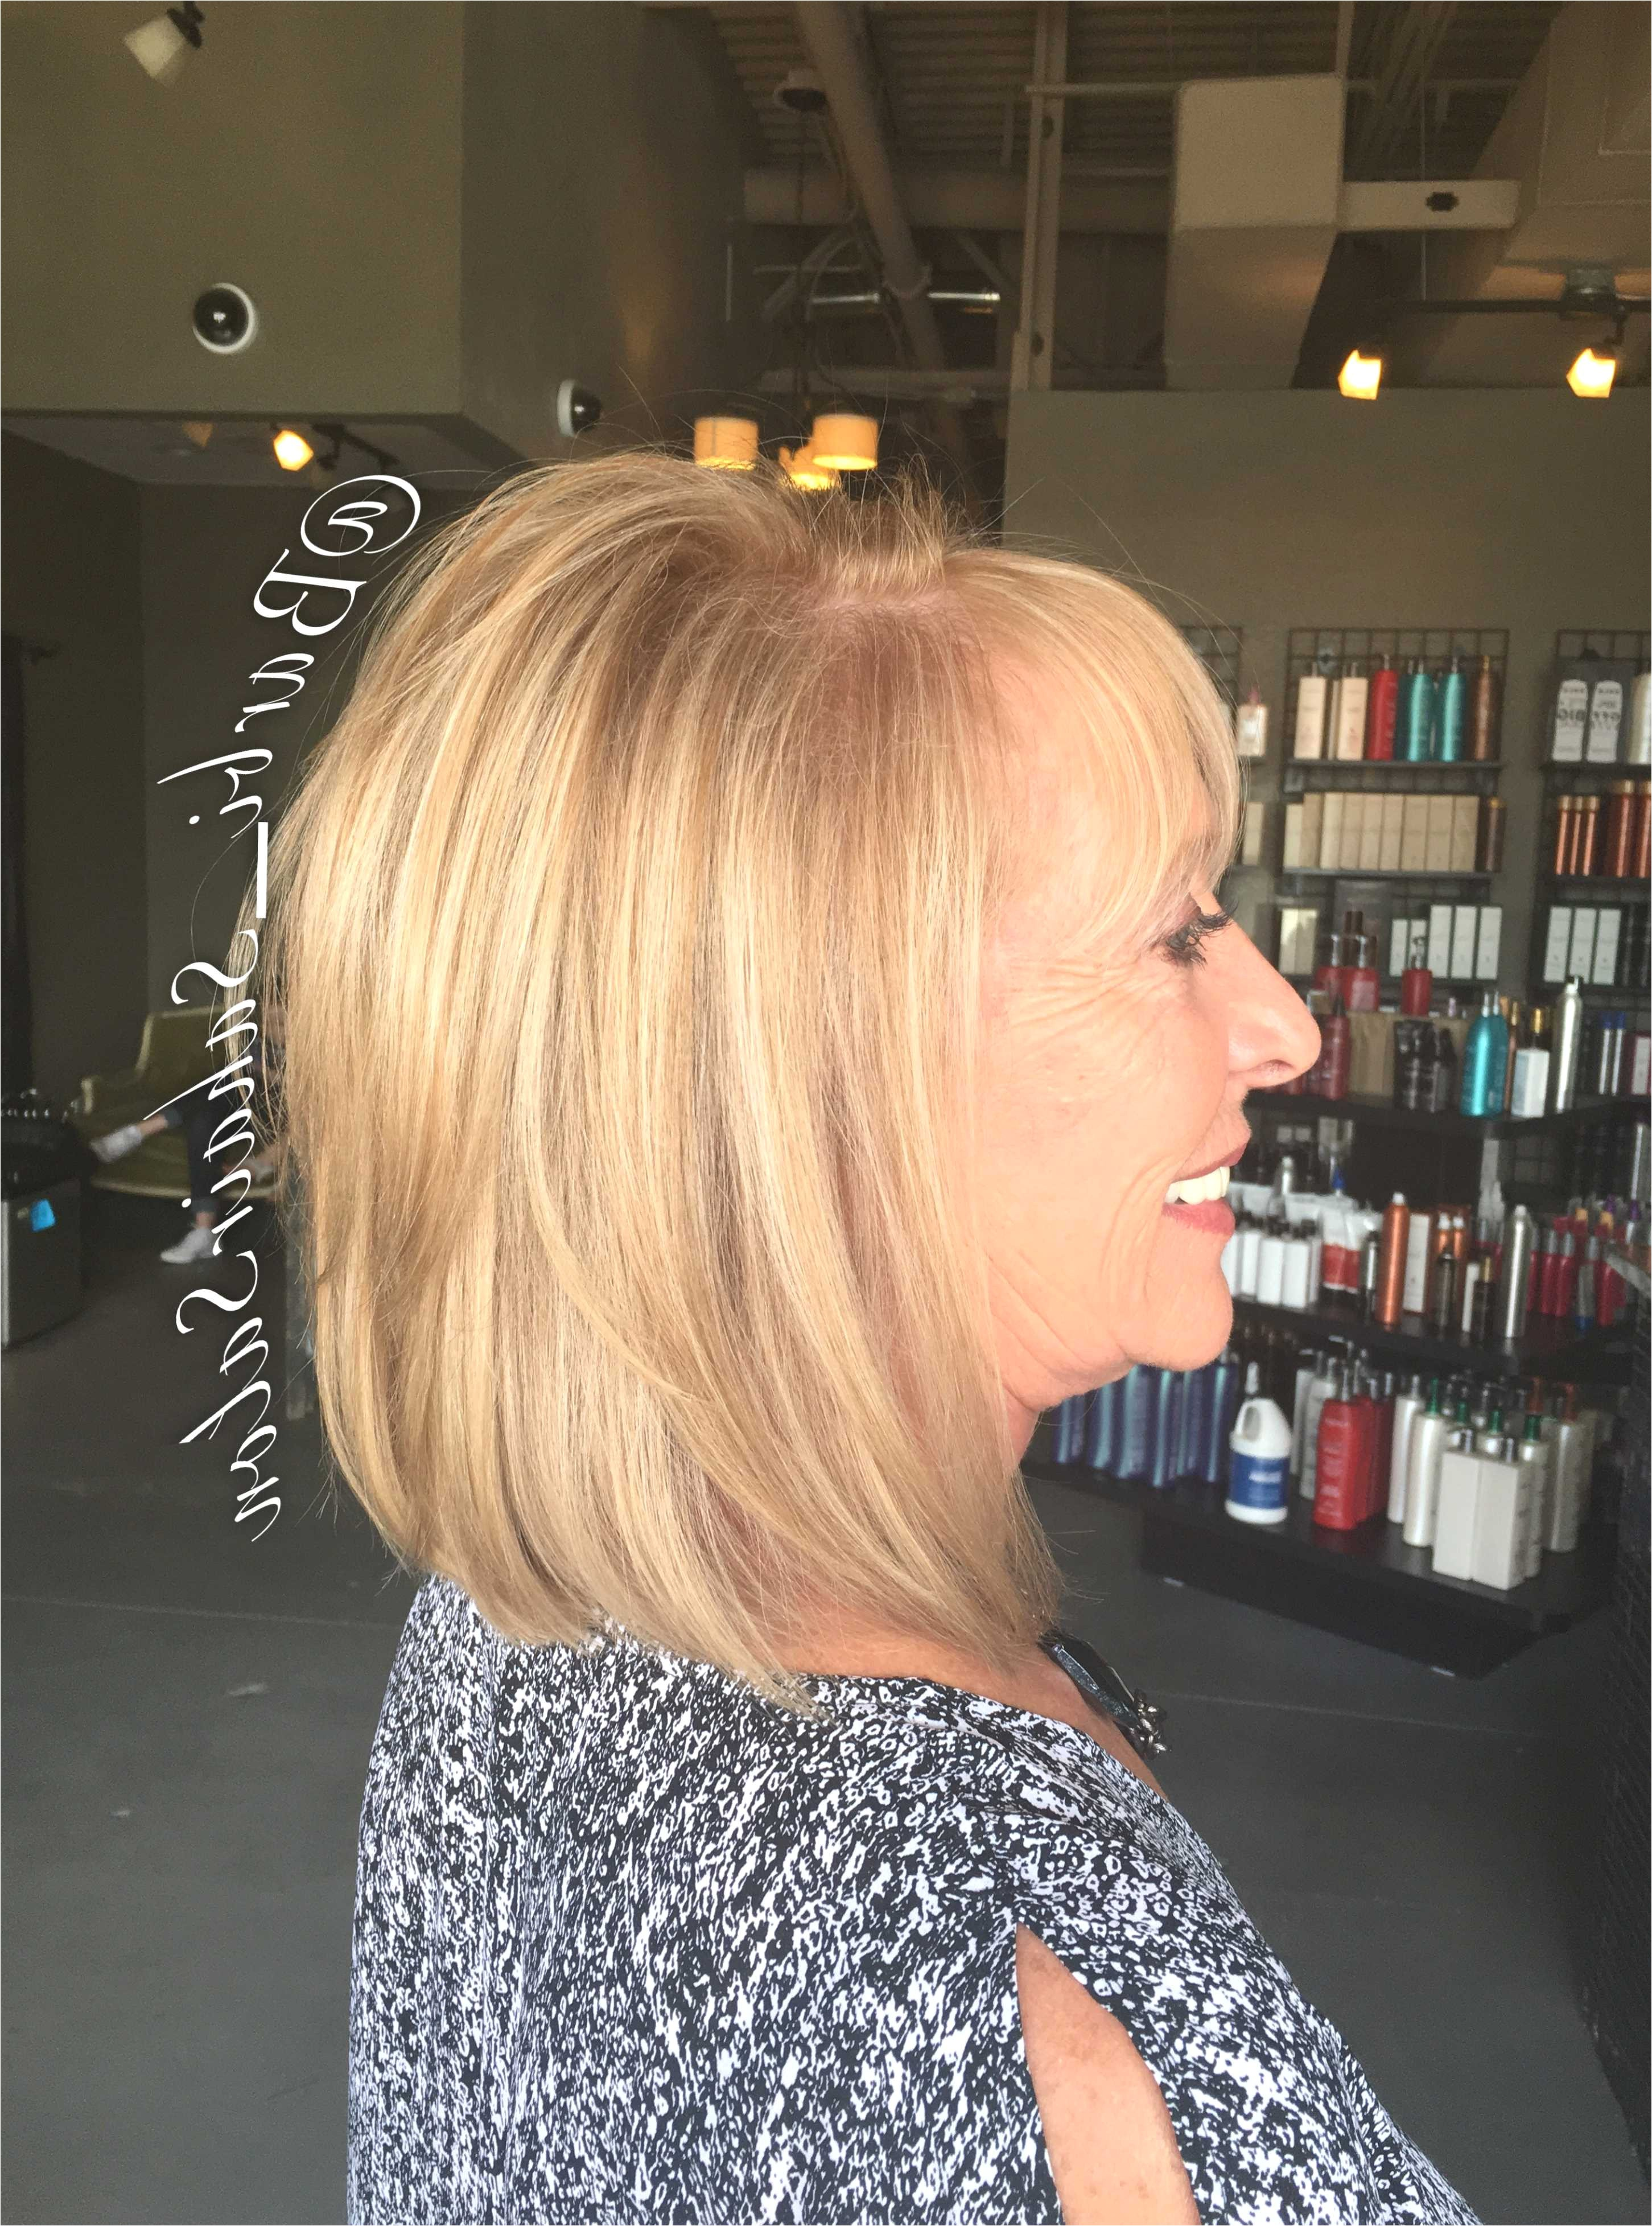 Hairstyles Cutting for Girls Different Bob Hairstyles Beautiful Black Hair Black Bob